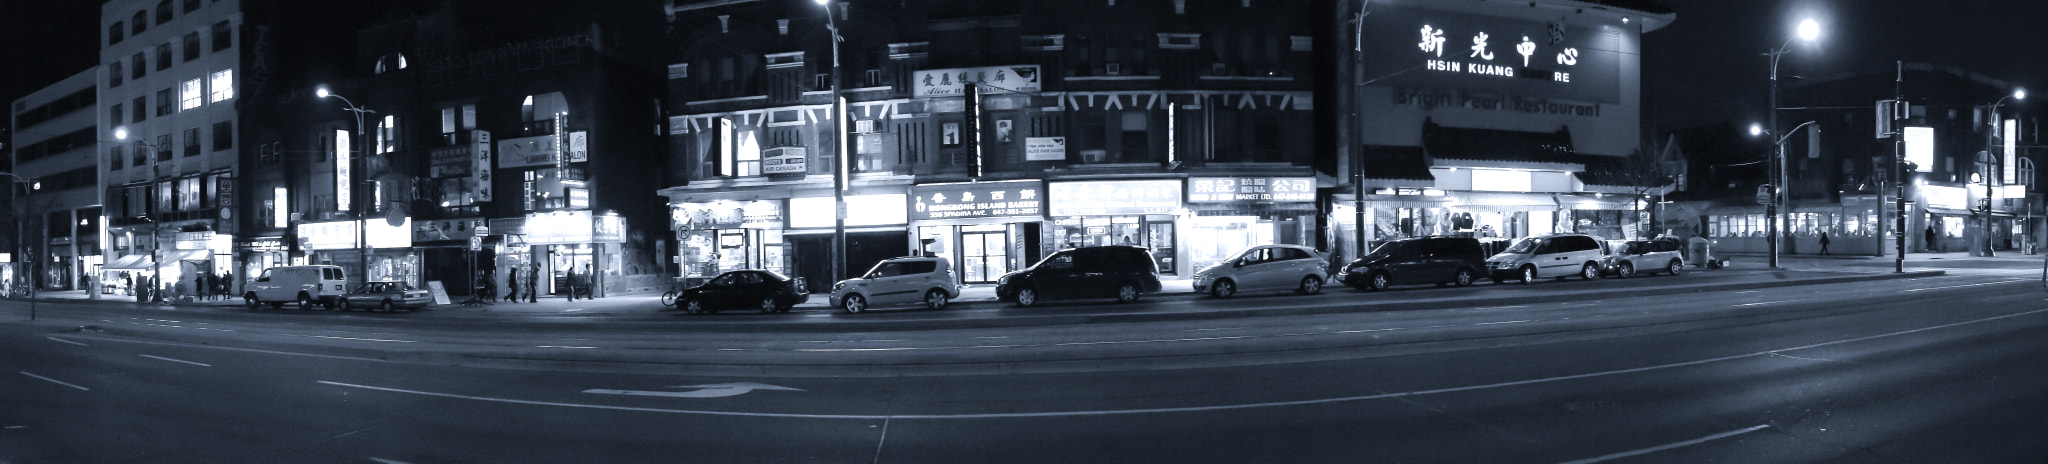 Photograph Spadina Avenue at Night by Pascal Lola on 500px